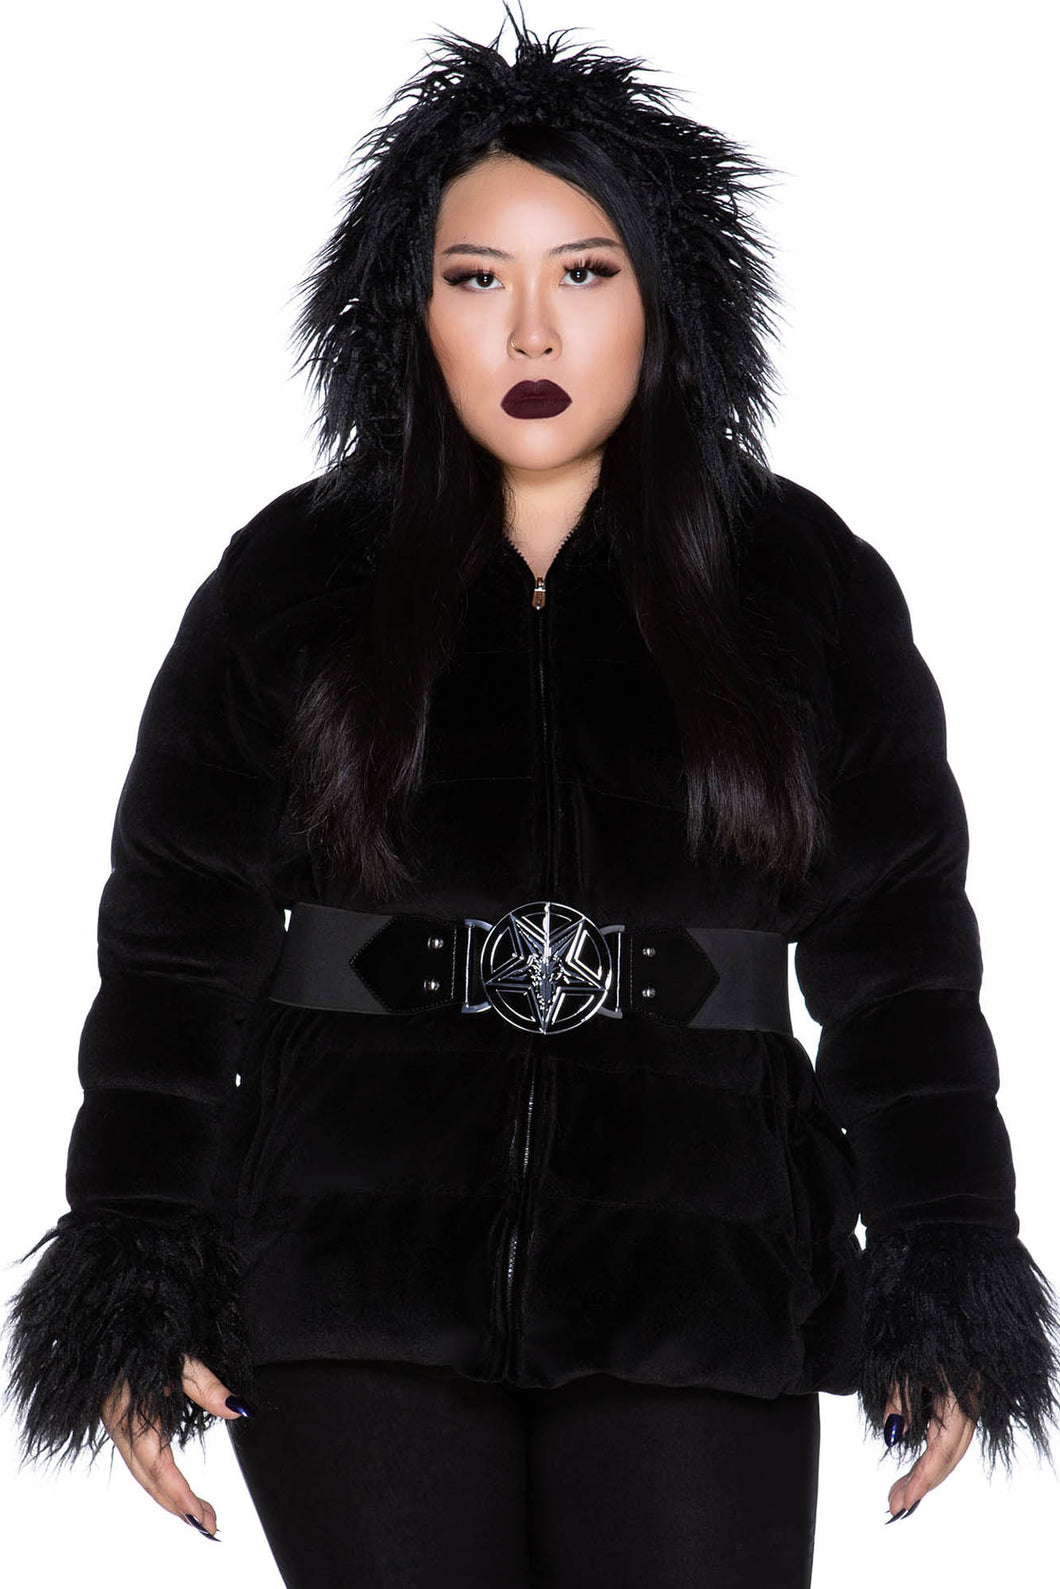 Killstar Gates Of Hell Hooded Coat Plus Size - Kate's Clothing